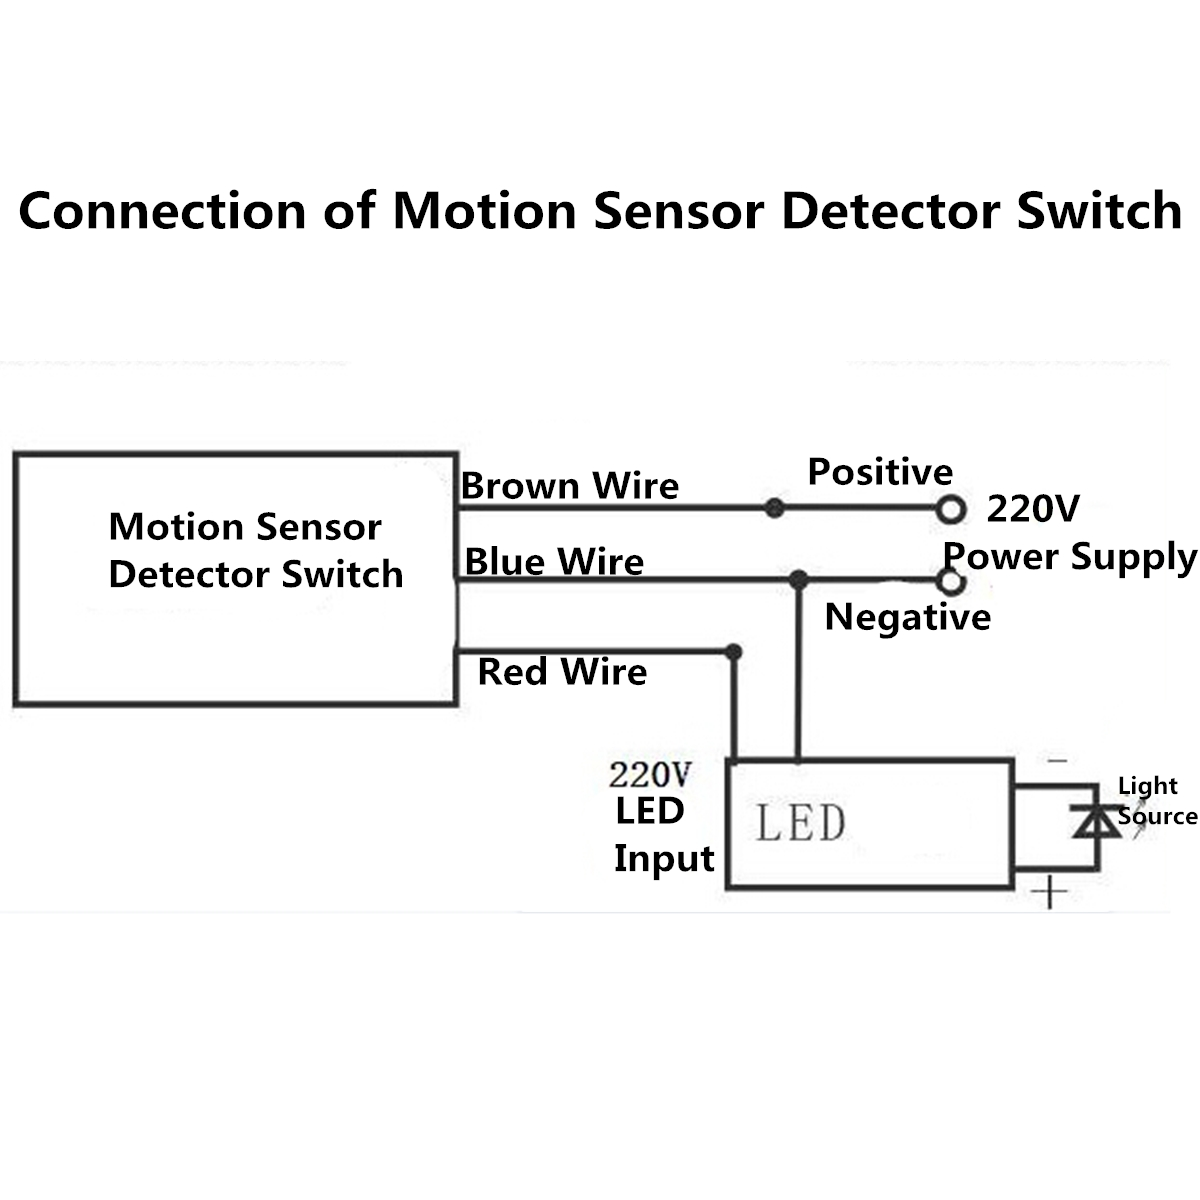 light switch wiring diagram 220v wiring librarymotion sensor light switch wiring diagram small pir circuit typical [ 1200 x 1200 Pixel ]